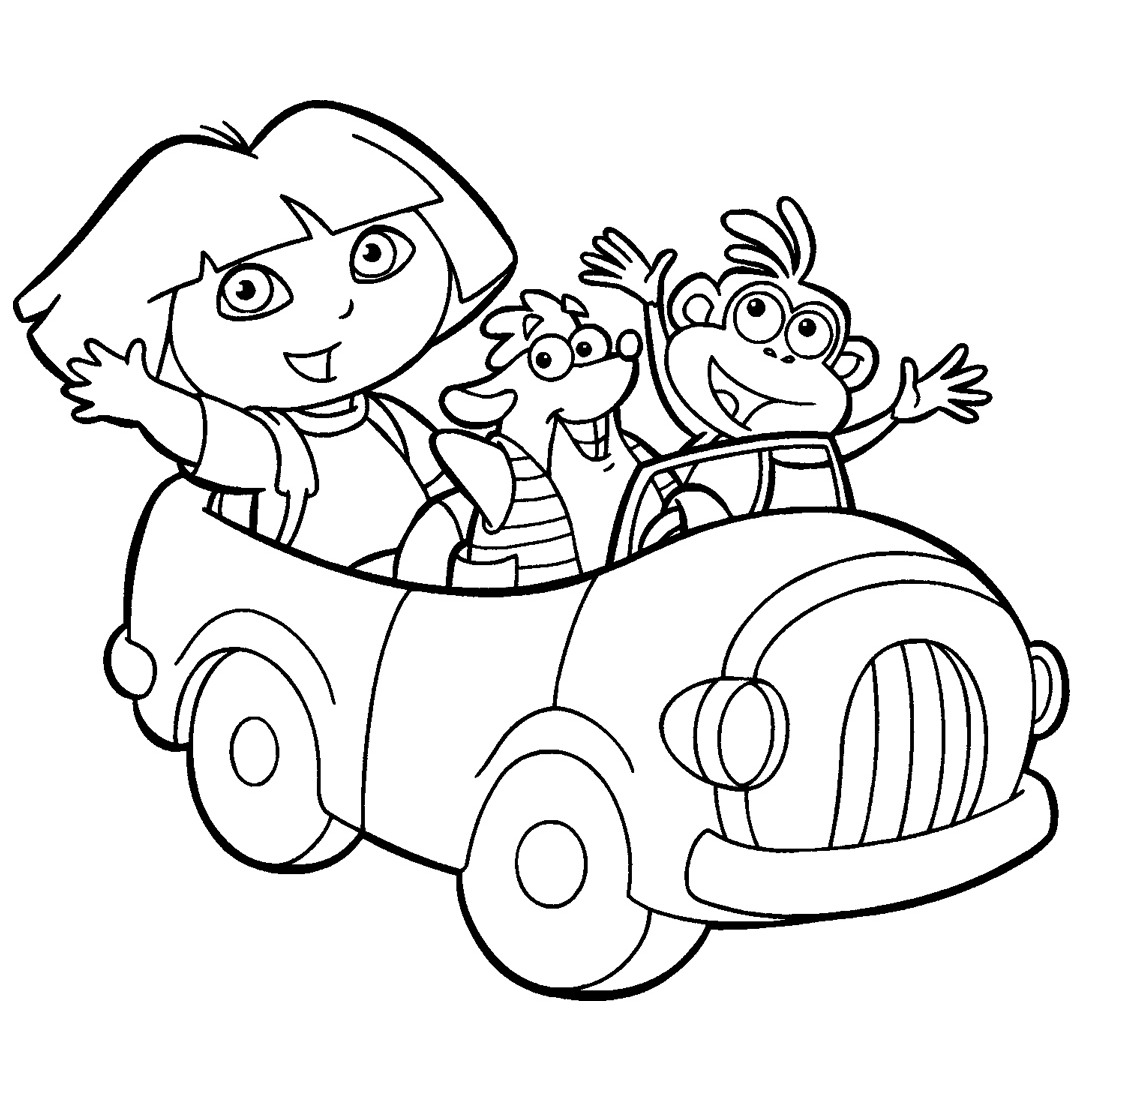 printable pictures of dora the explorer dora the explorer kids coloring pages free colouring the dora of pictures printable explorer